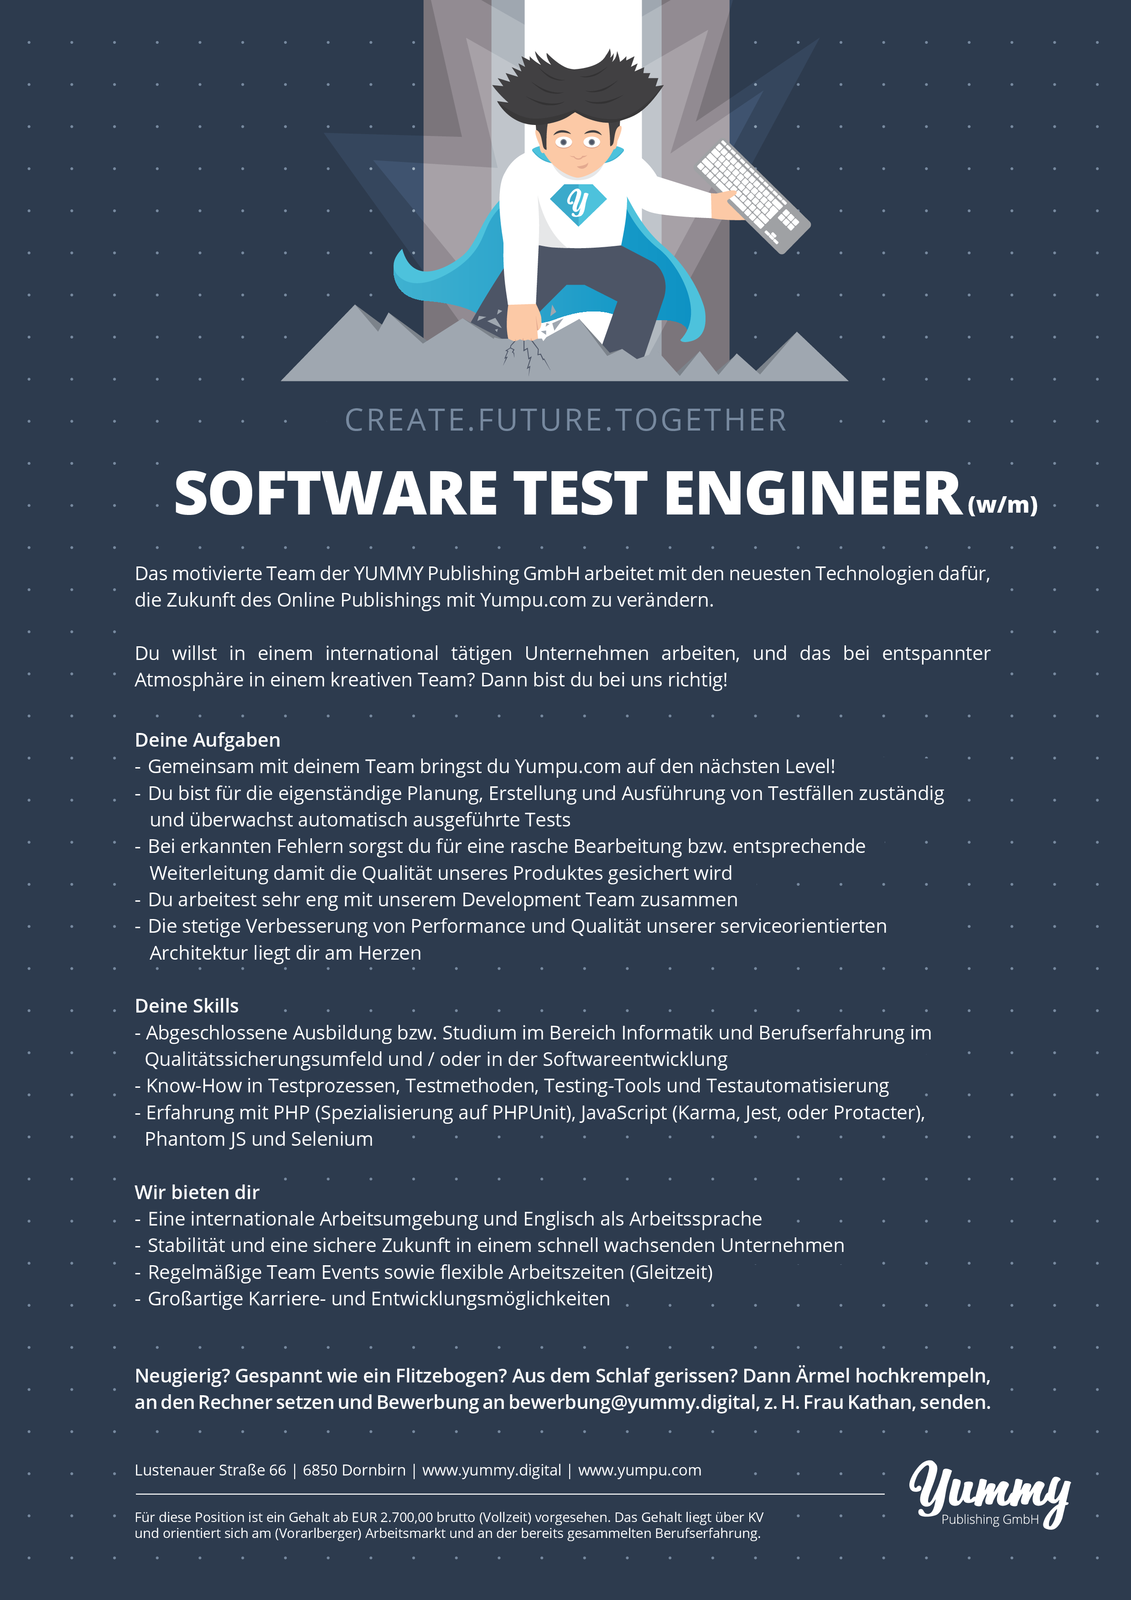 Software Test Engineer (w/m)